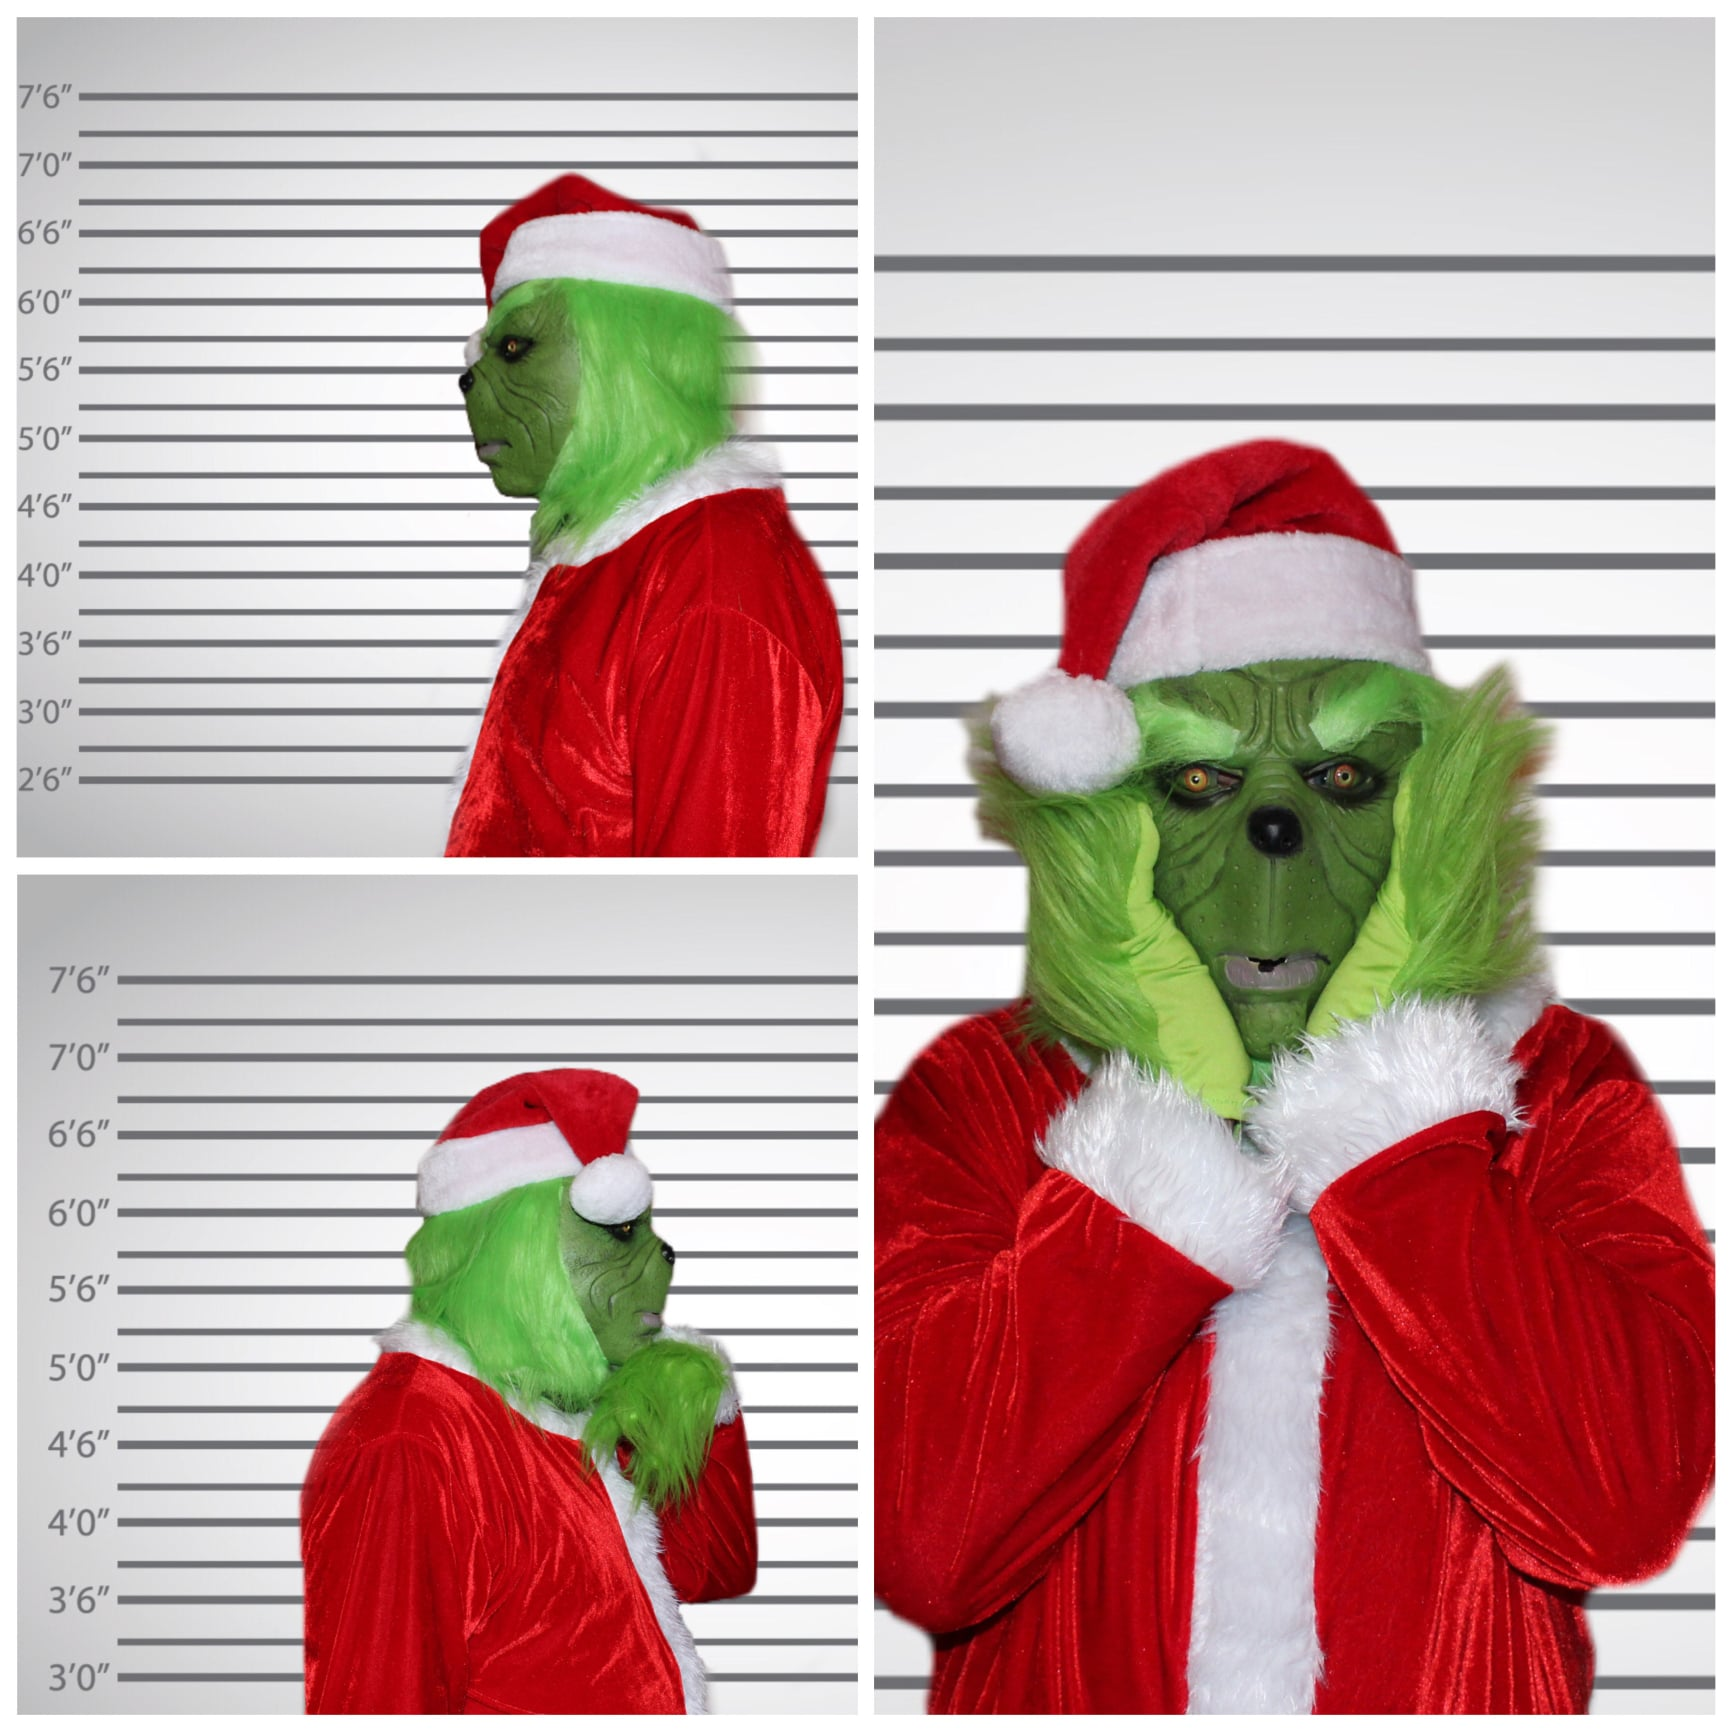 Shoshoni Police Saved Christmas, Apprehend Grinch in the Act